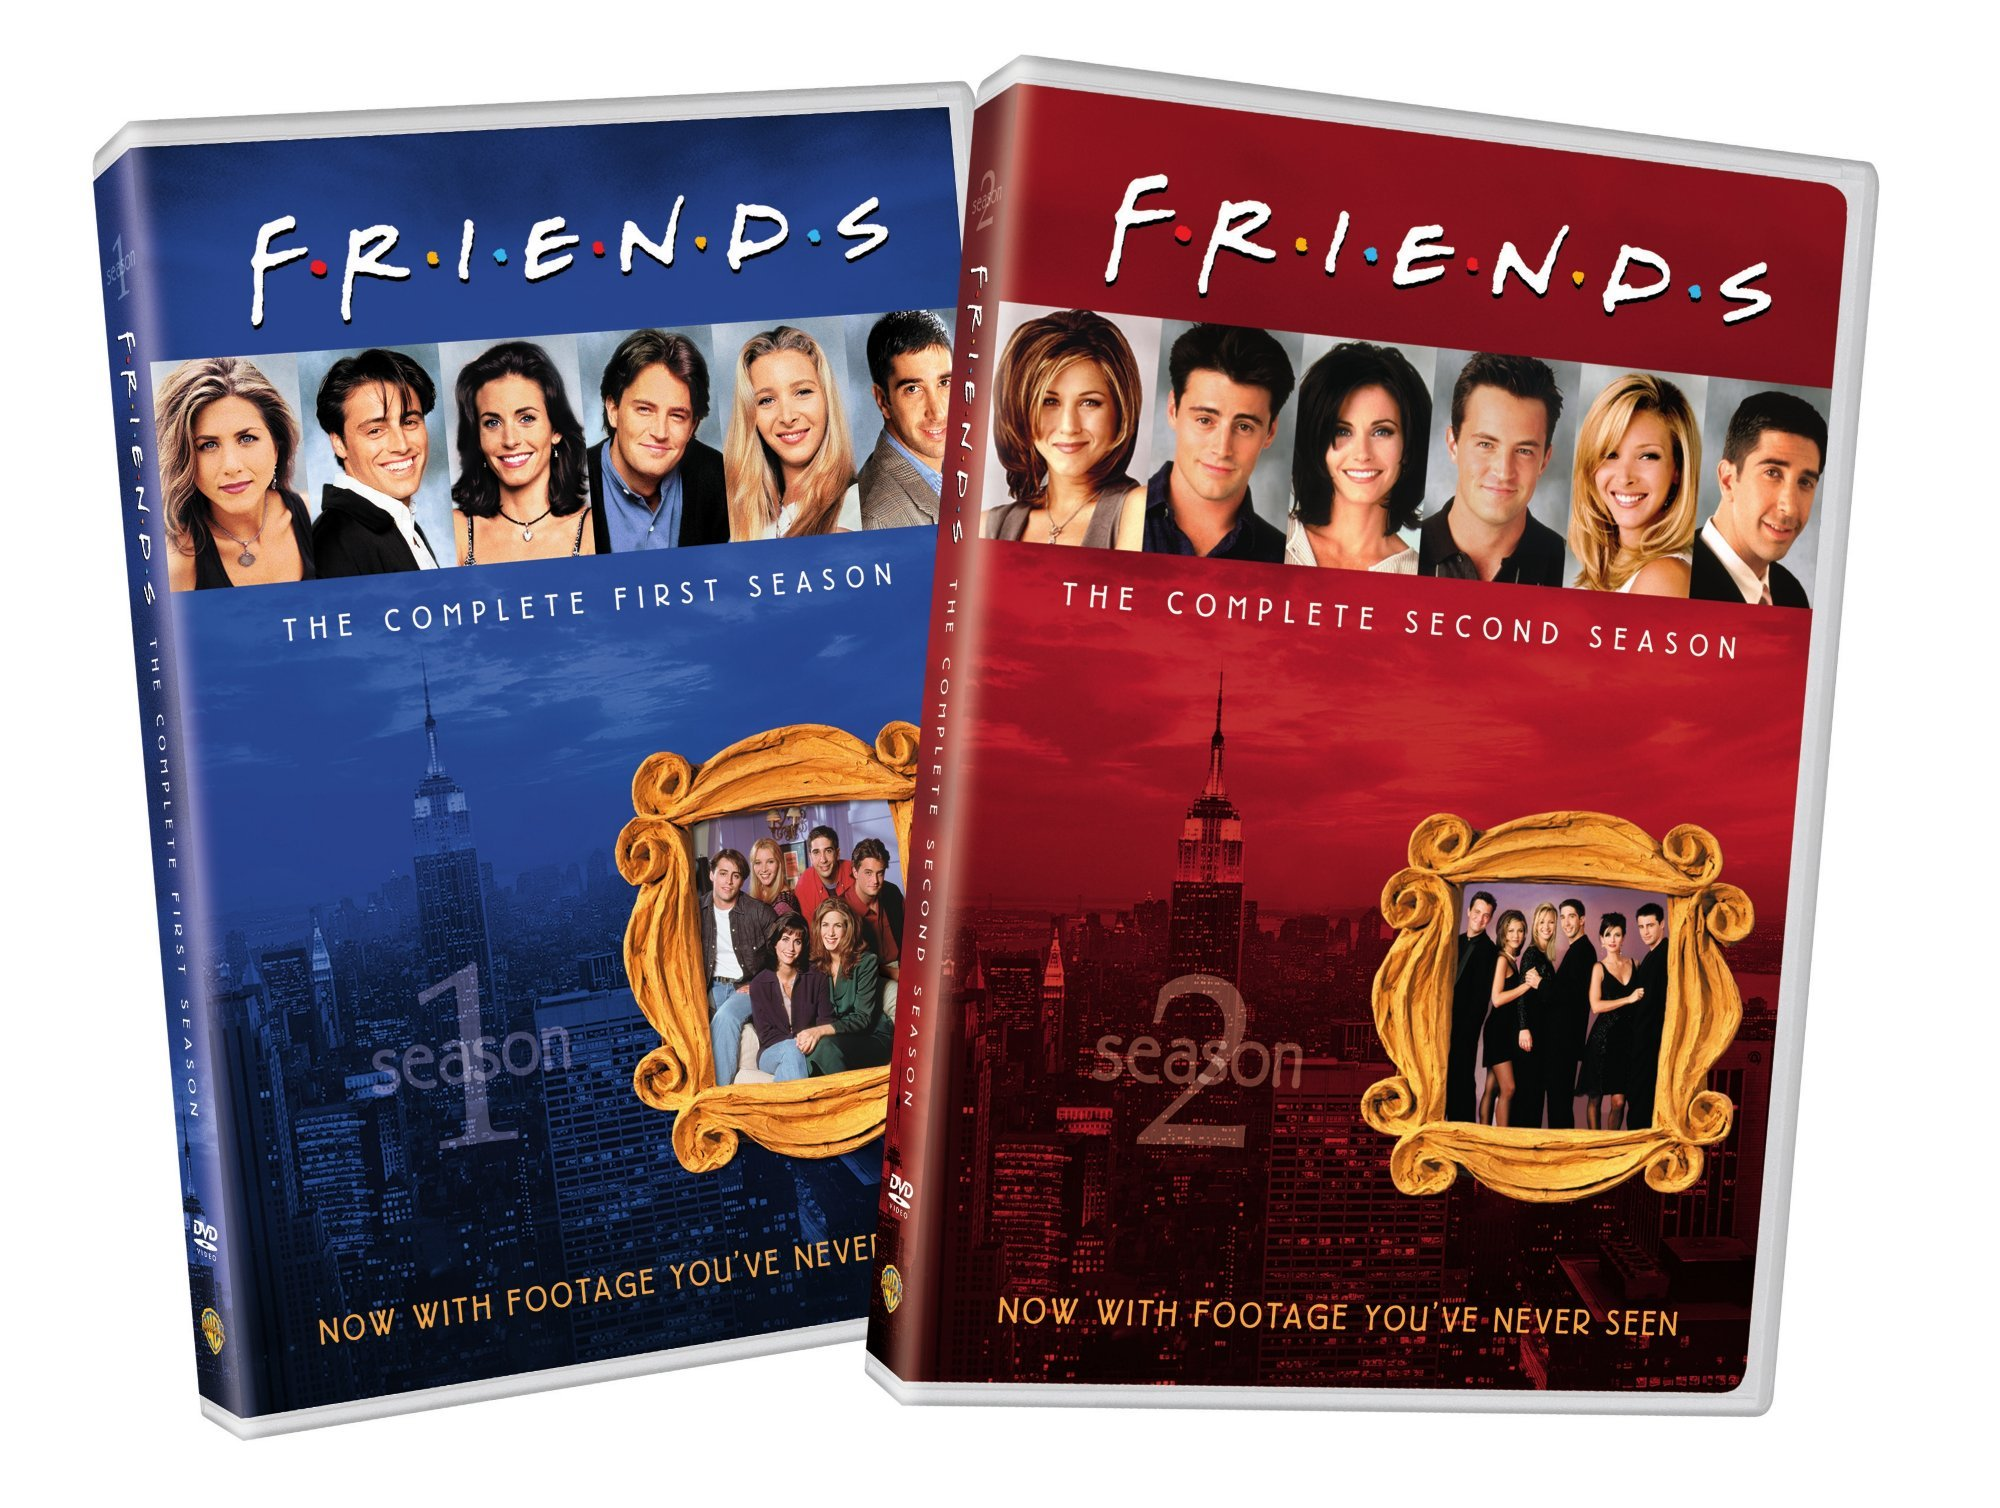 Friends: Seasons 1 and 2